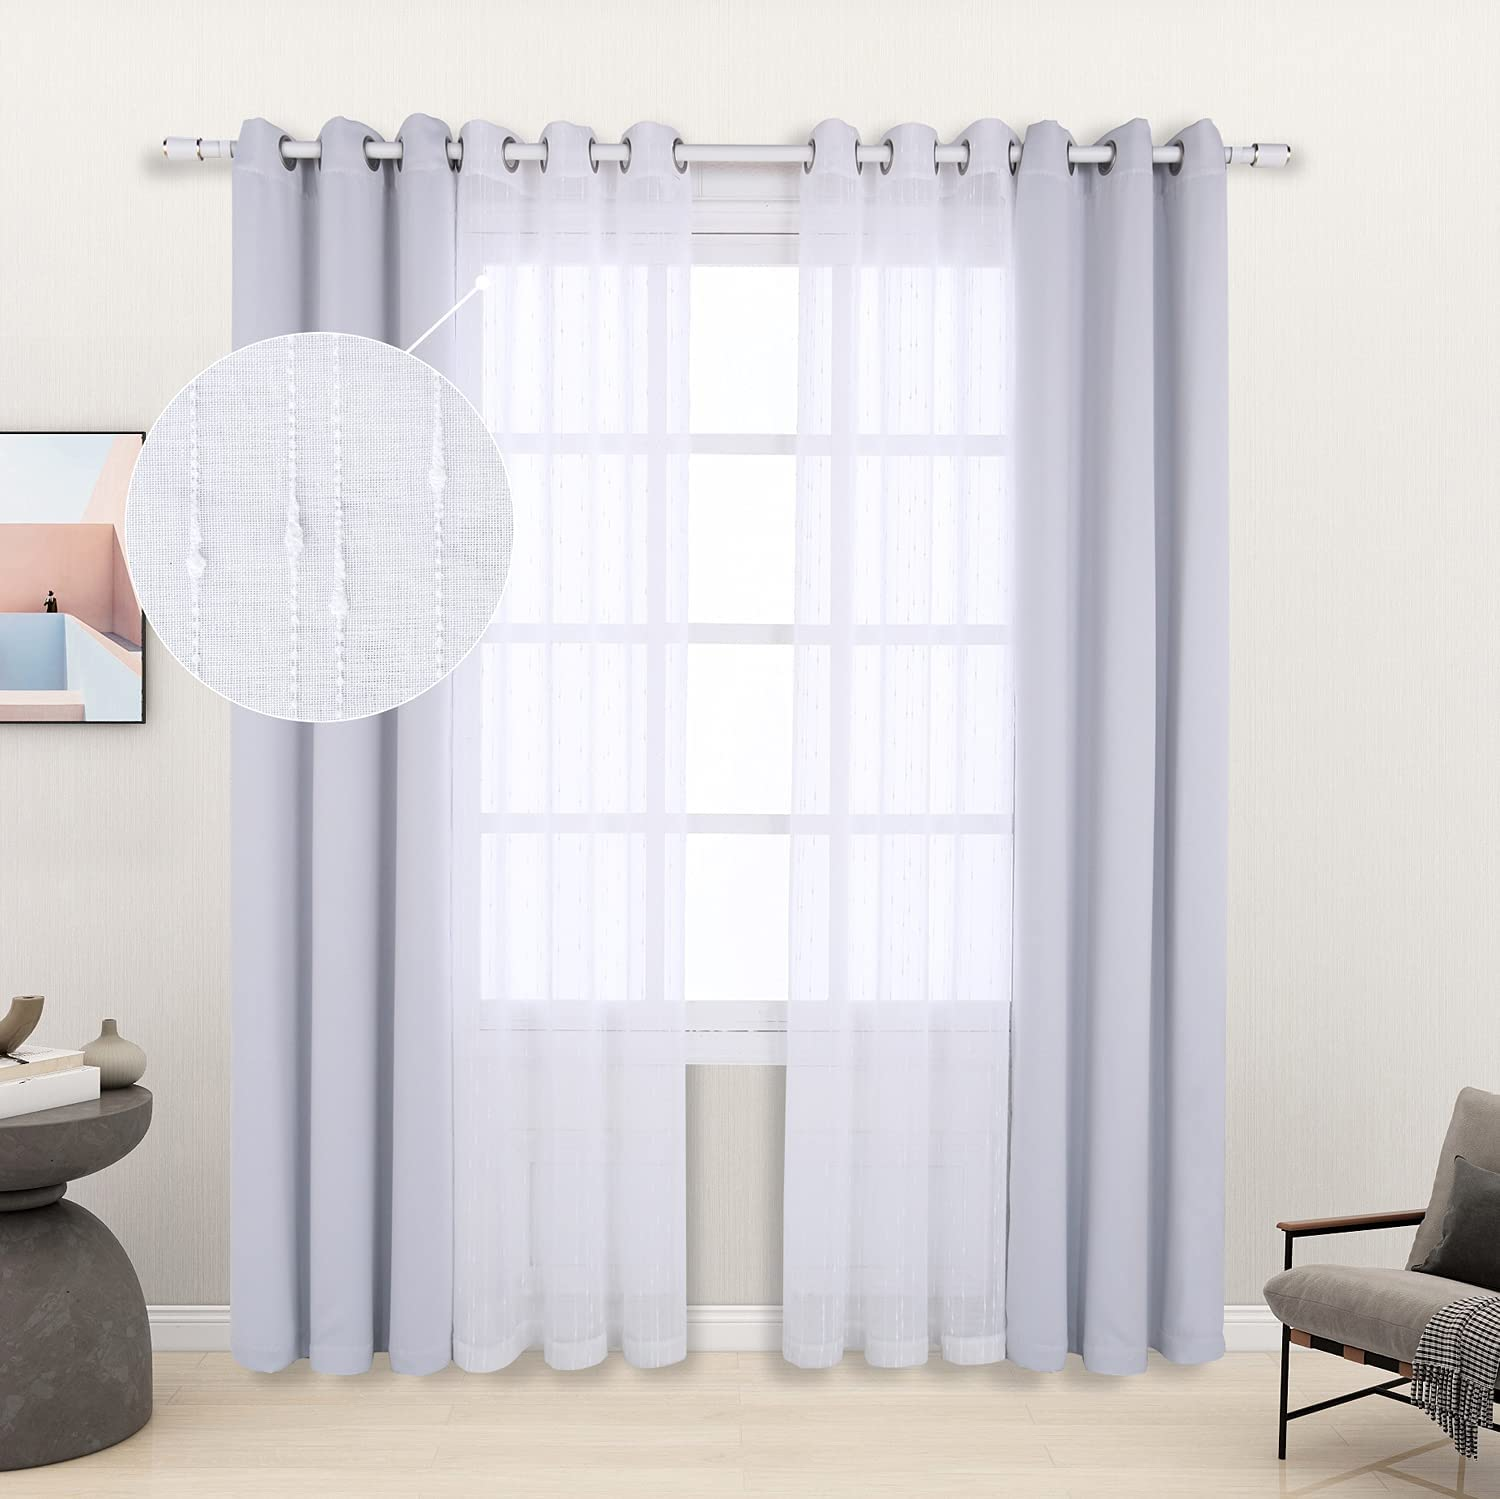 LORDTEX Mix OFFer and Match Curtain - Whi Pieces Linen Slub Ranking TOP16 Textured 2